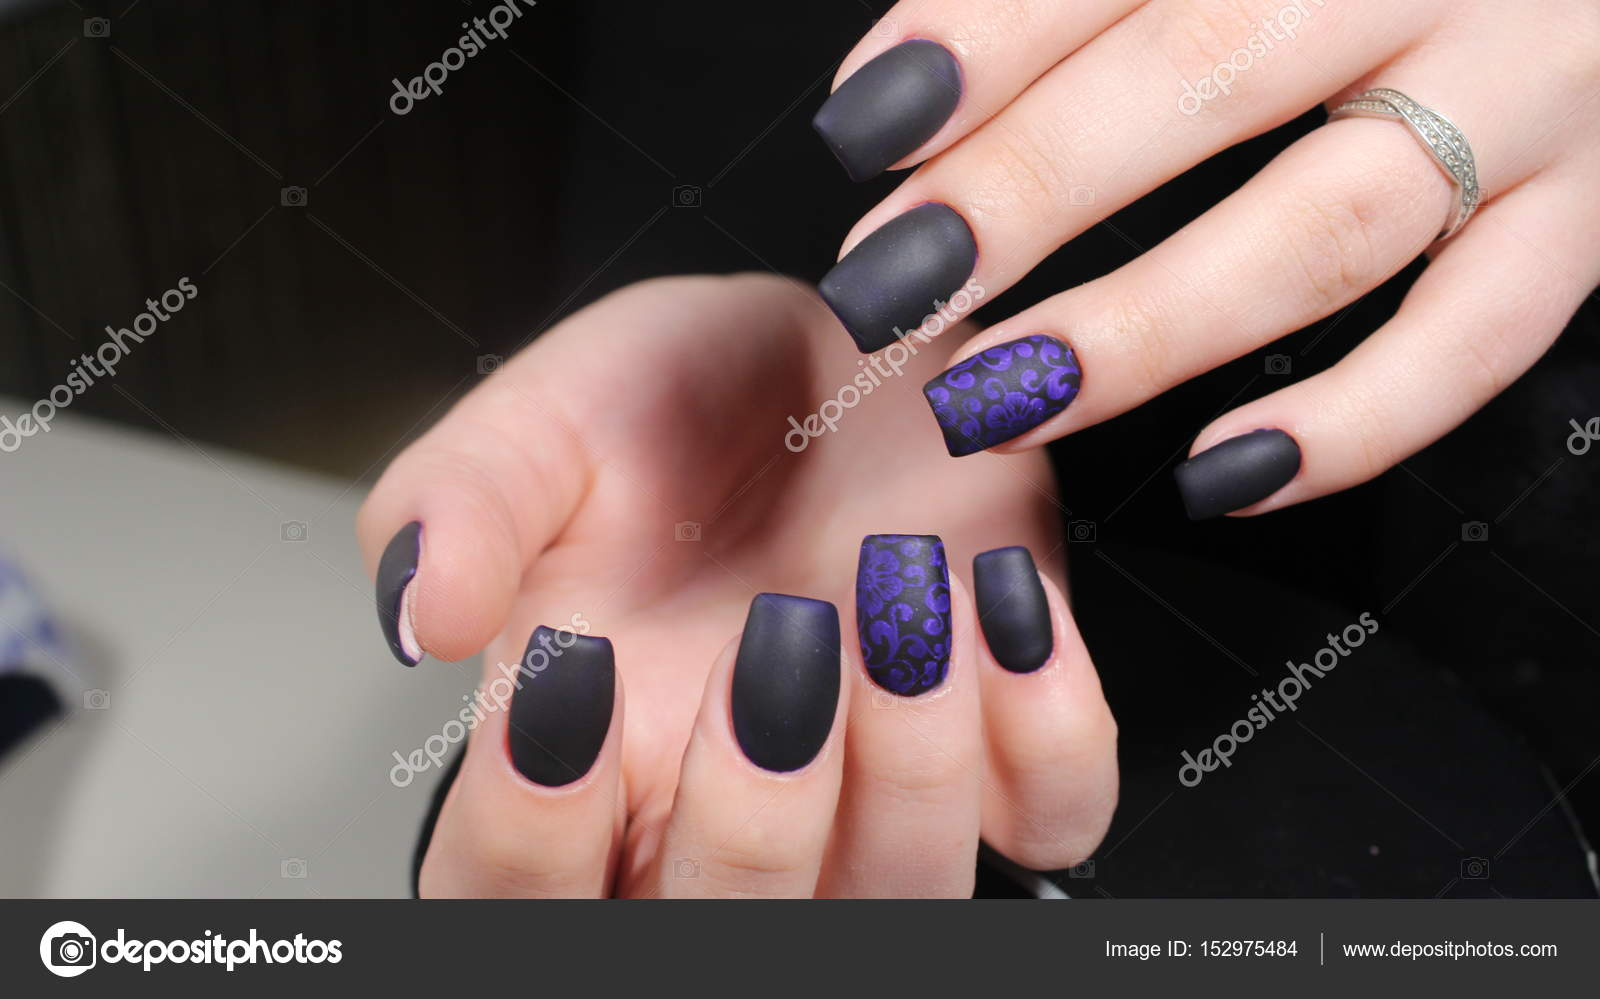 Black And Blue Nail Designs Design Of Manicure Matt Black And Blue Nails Stock Photo C Smirmaxstock 152975484